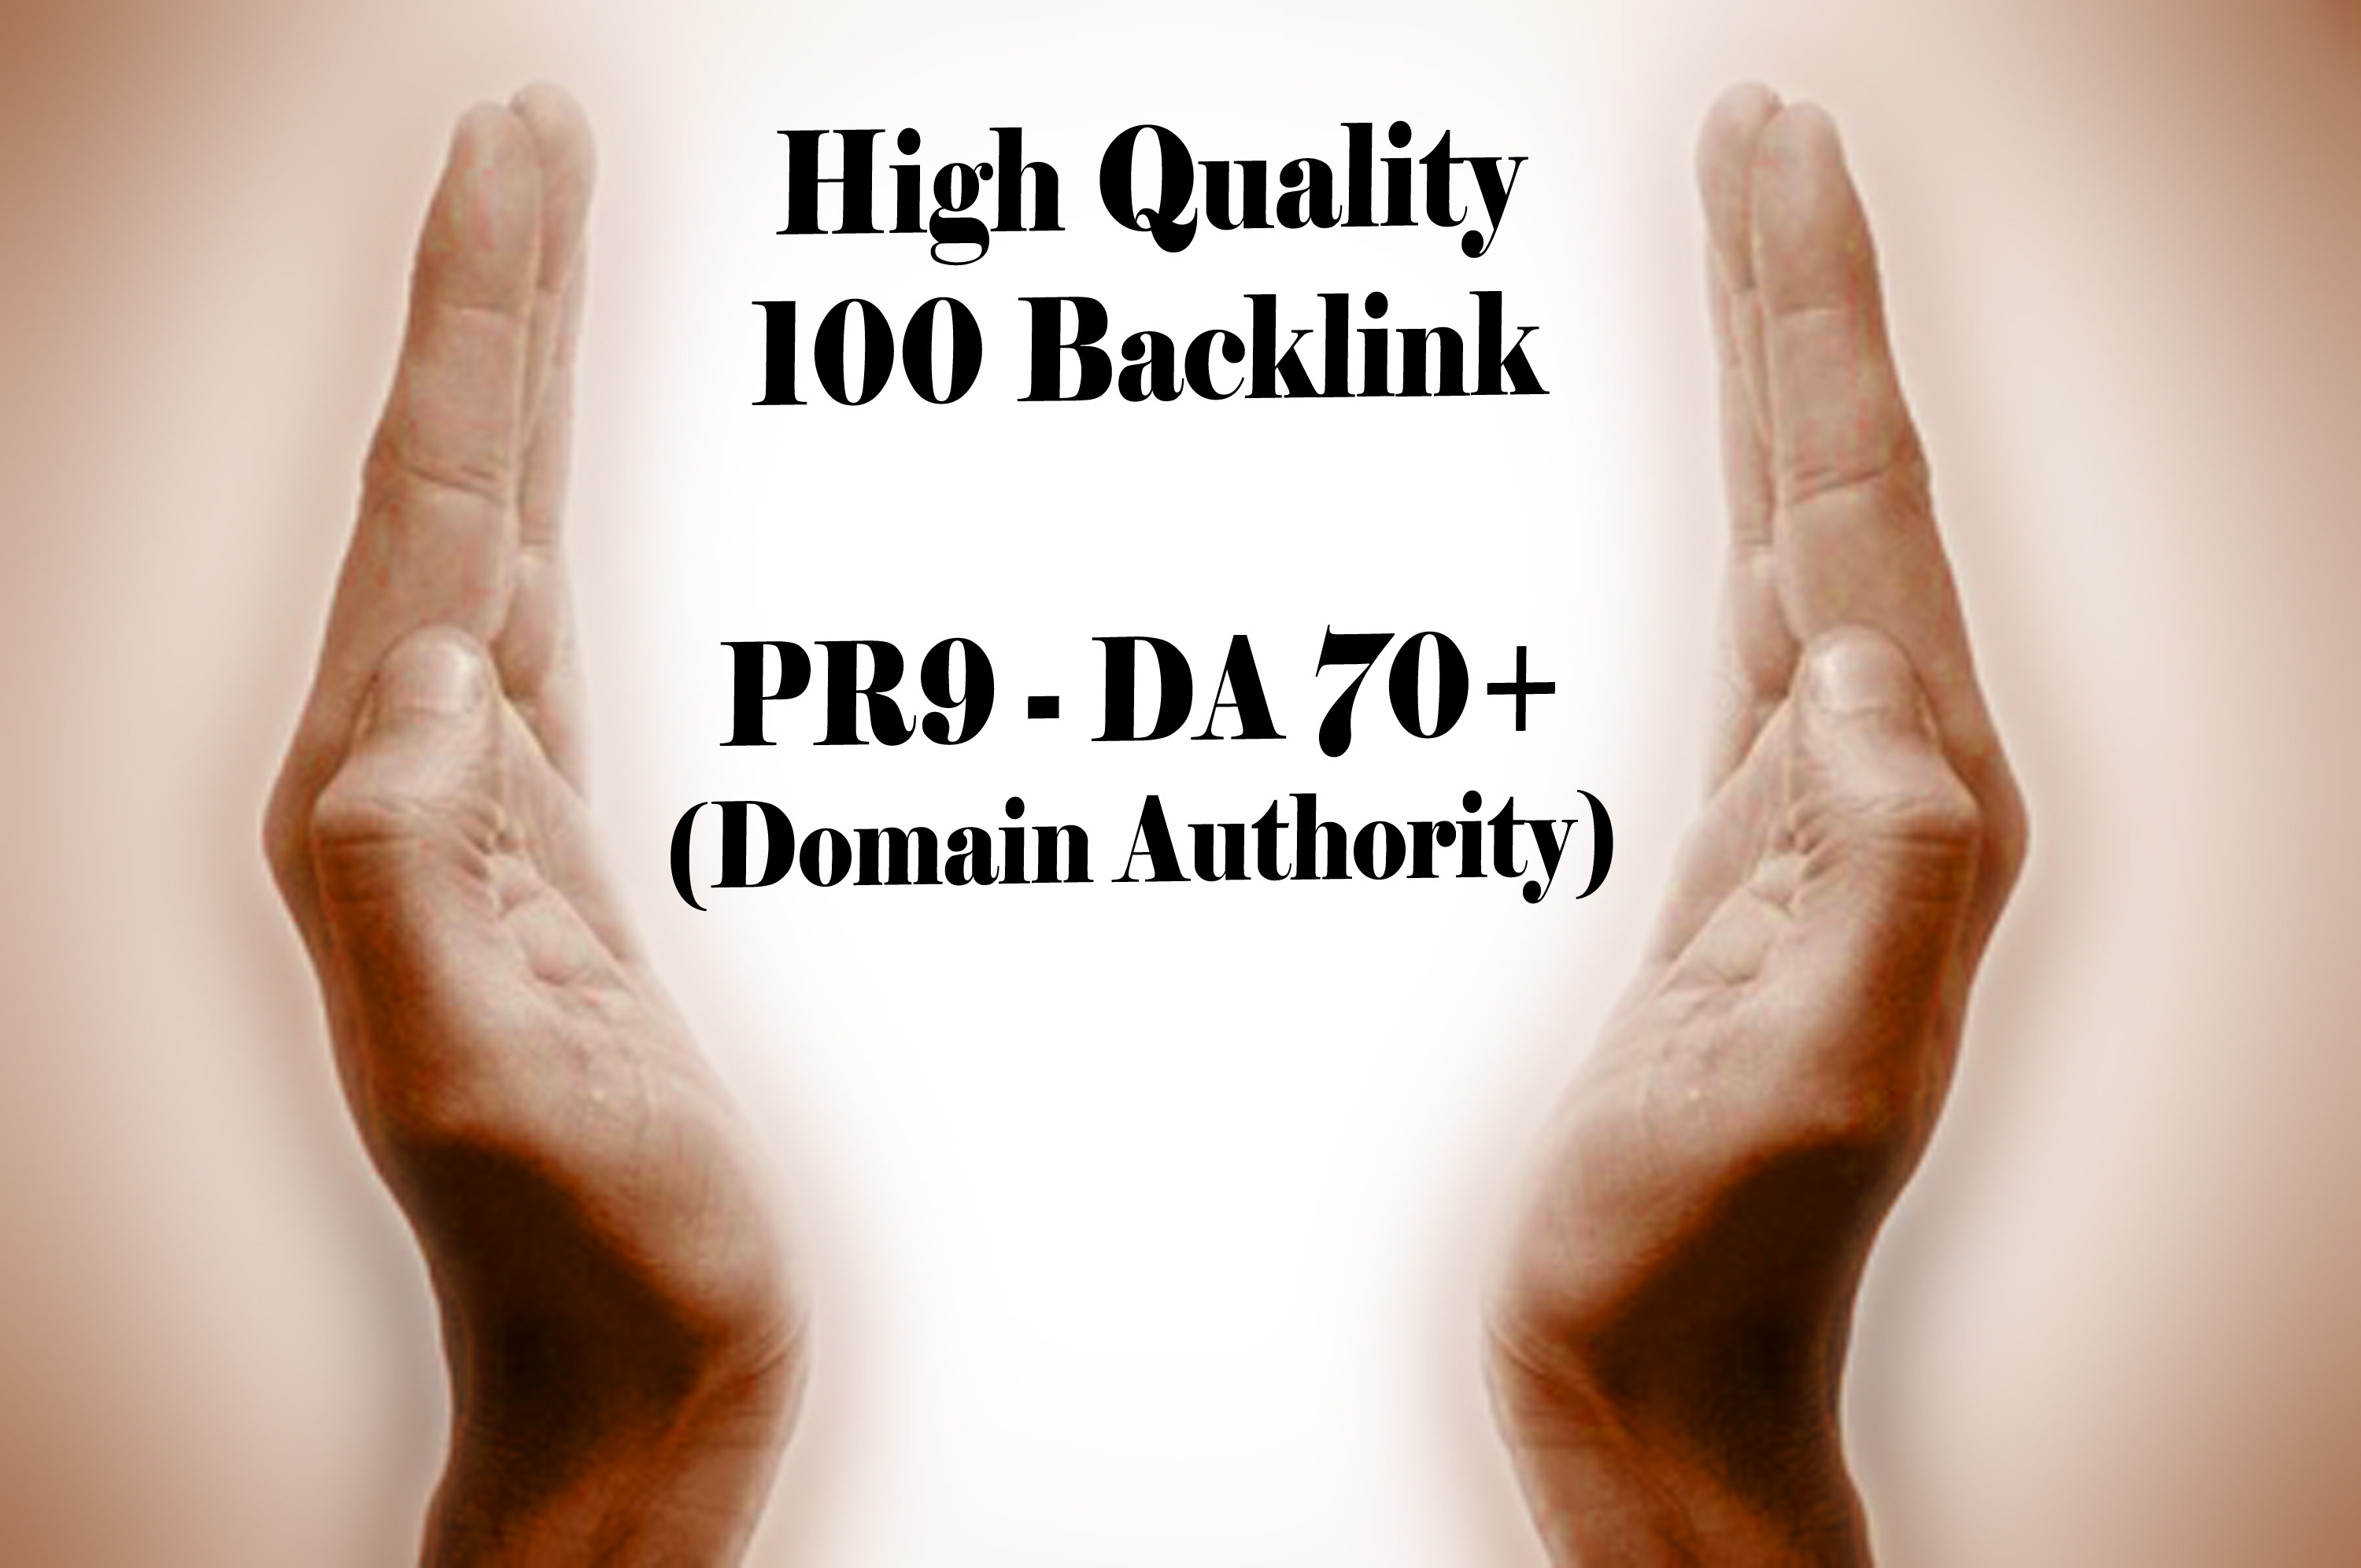 100 PR9 - DA 70+ backlink (Domain Authority)